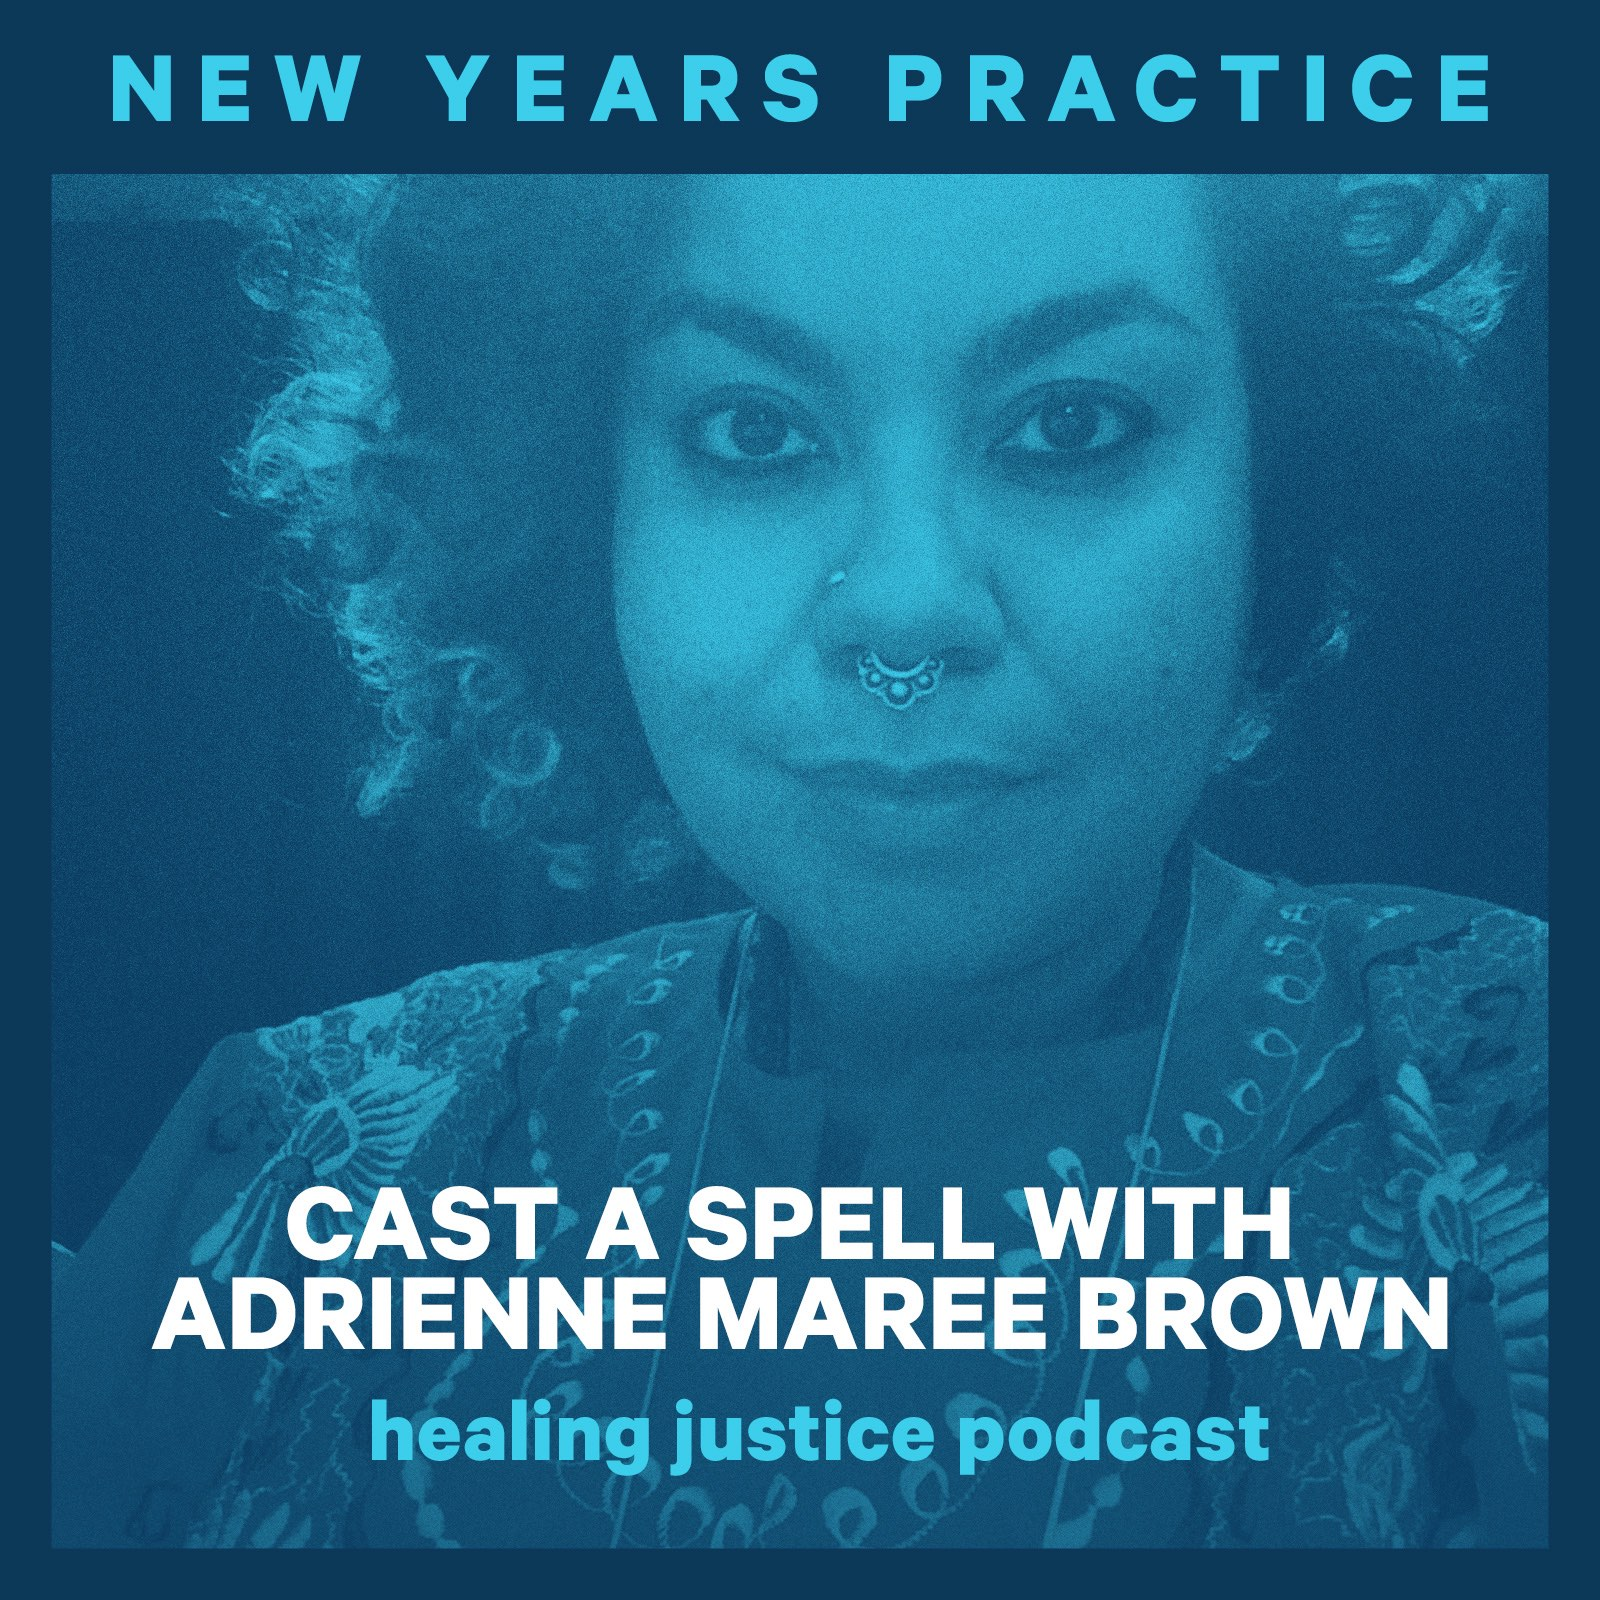 New Years Practice: Cast a Spell with adrienne maree brown